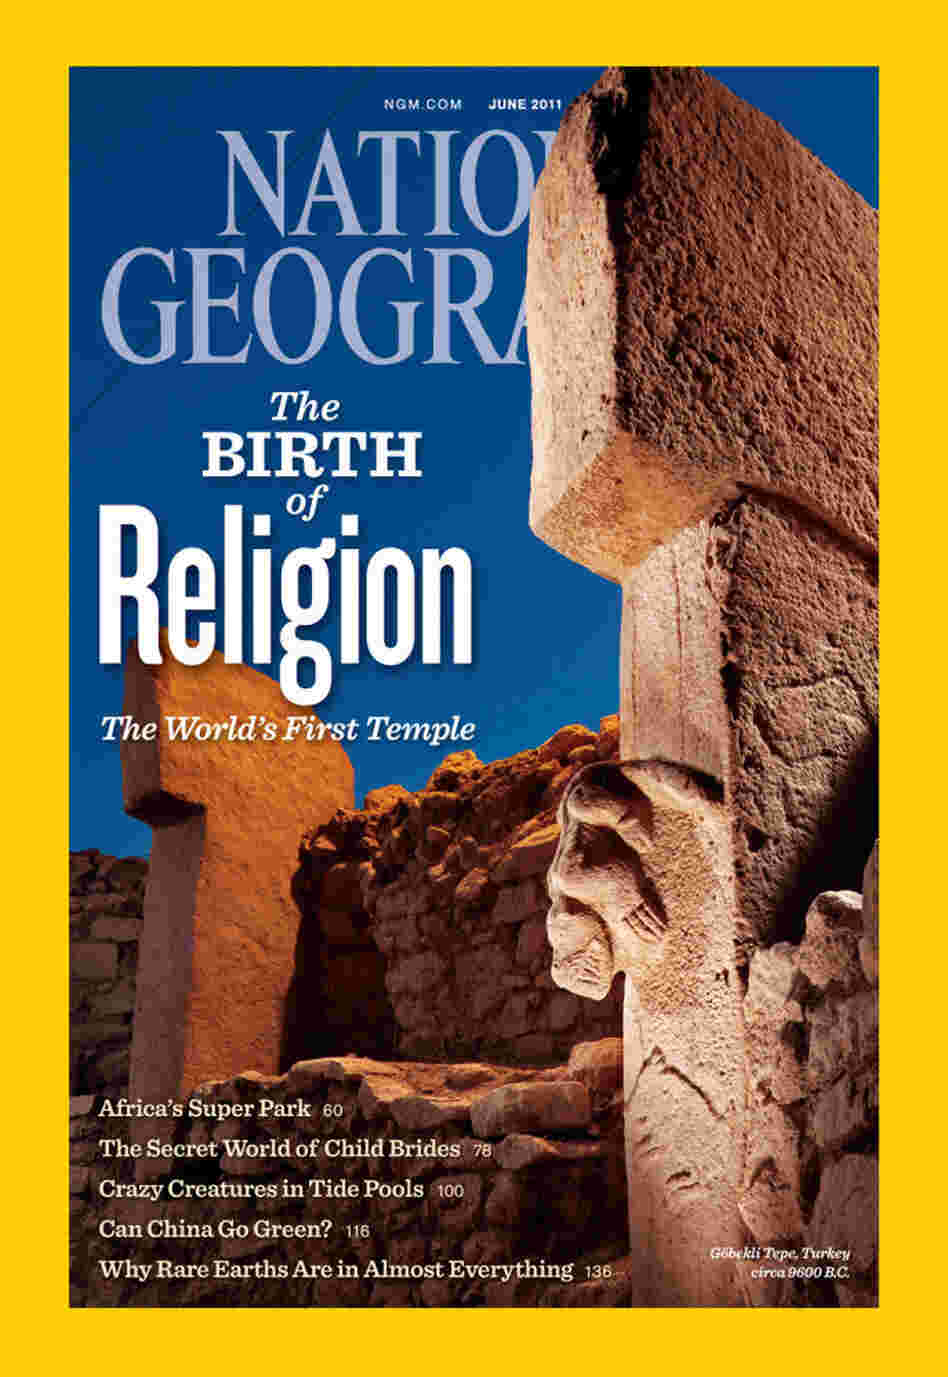 The June 2011 cover of National Geographic Magazine